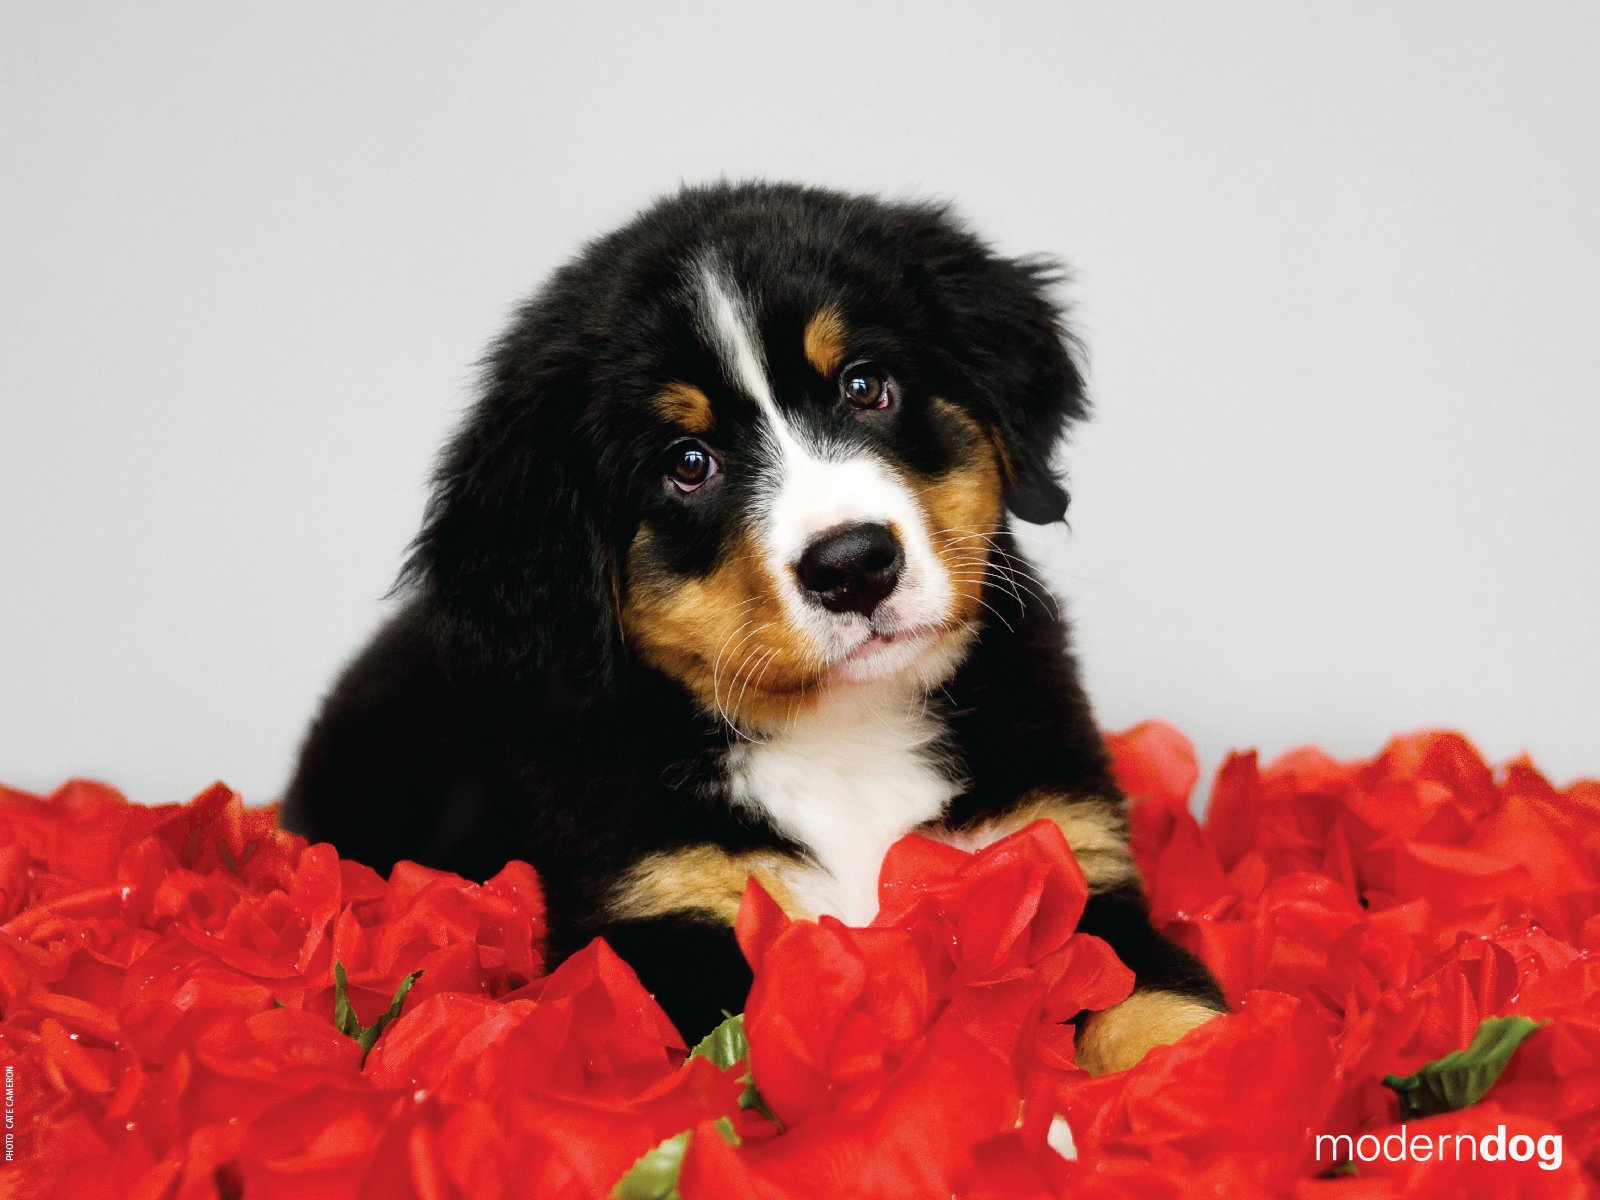 Very Cute Puppy Wallpapers Puppies Free Modern Dog Wallpaper Modern Dog Magazine